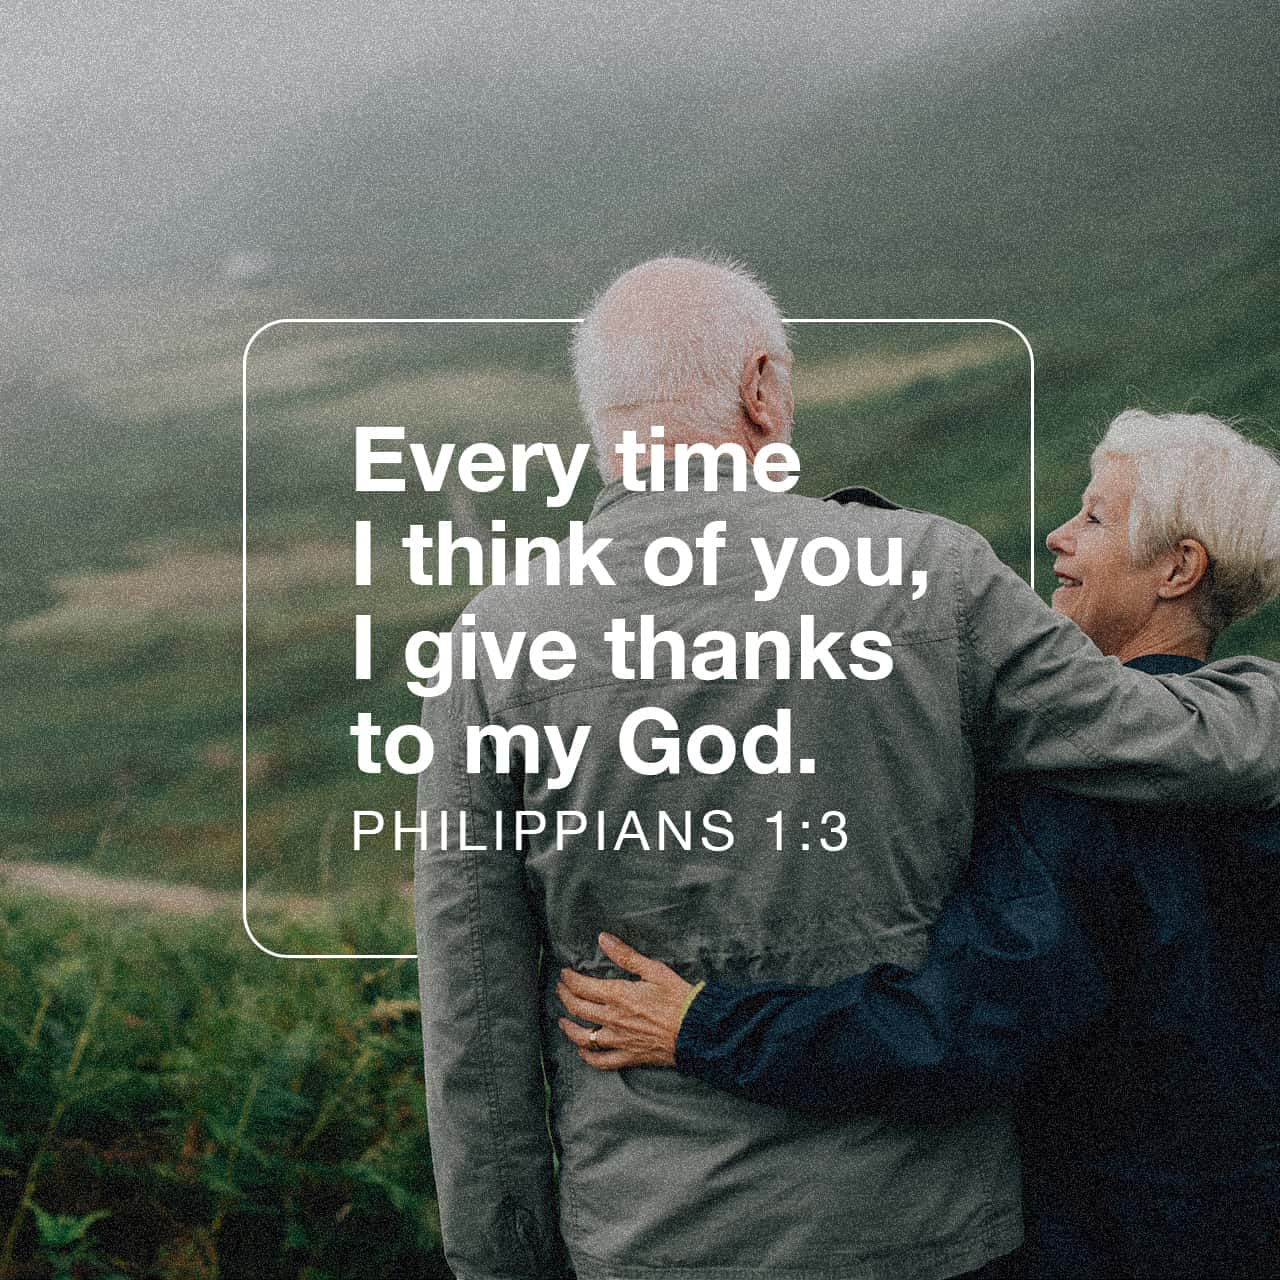 Every time I think of you, I give thanks to my God - Philippians 1:3 - Verse Image